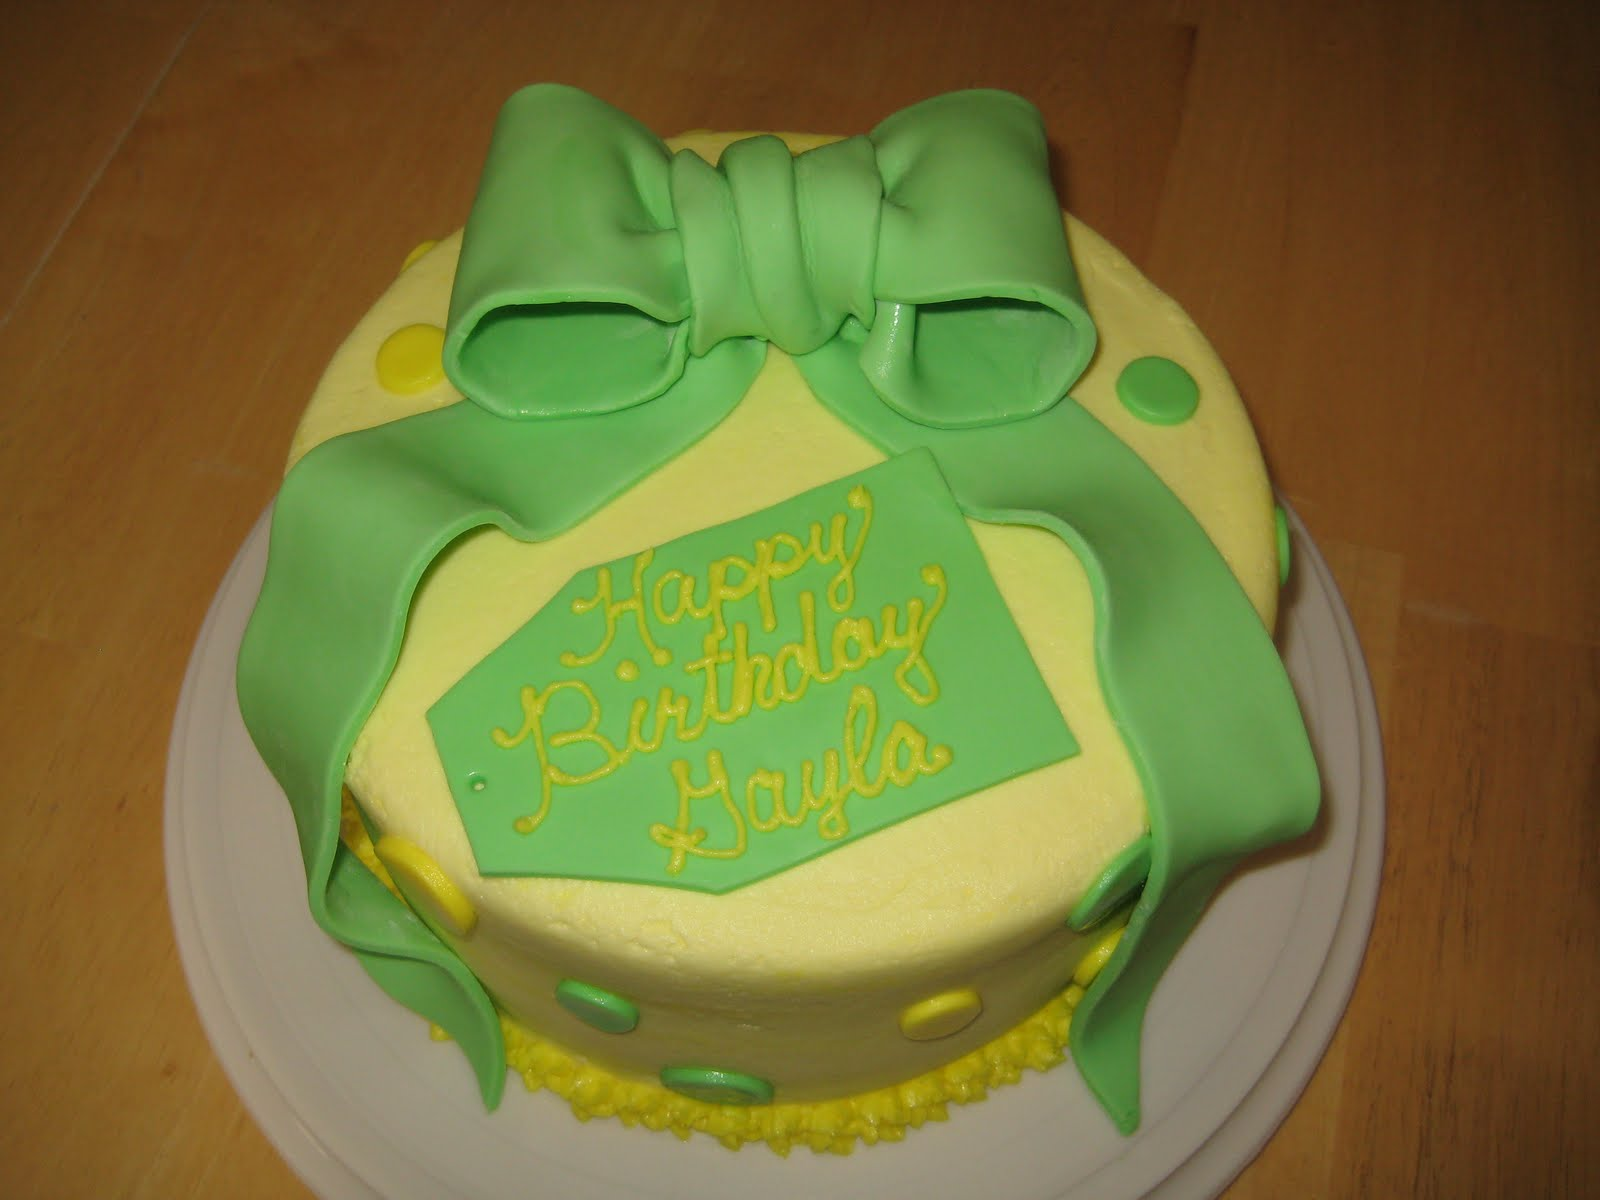 Pastor Day Cakes http://treatsbychristi.blogspot.com/2011/03/cake-and-cupcakes-st-patricks-day.html